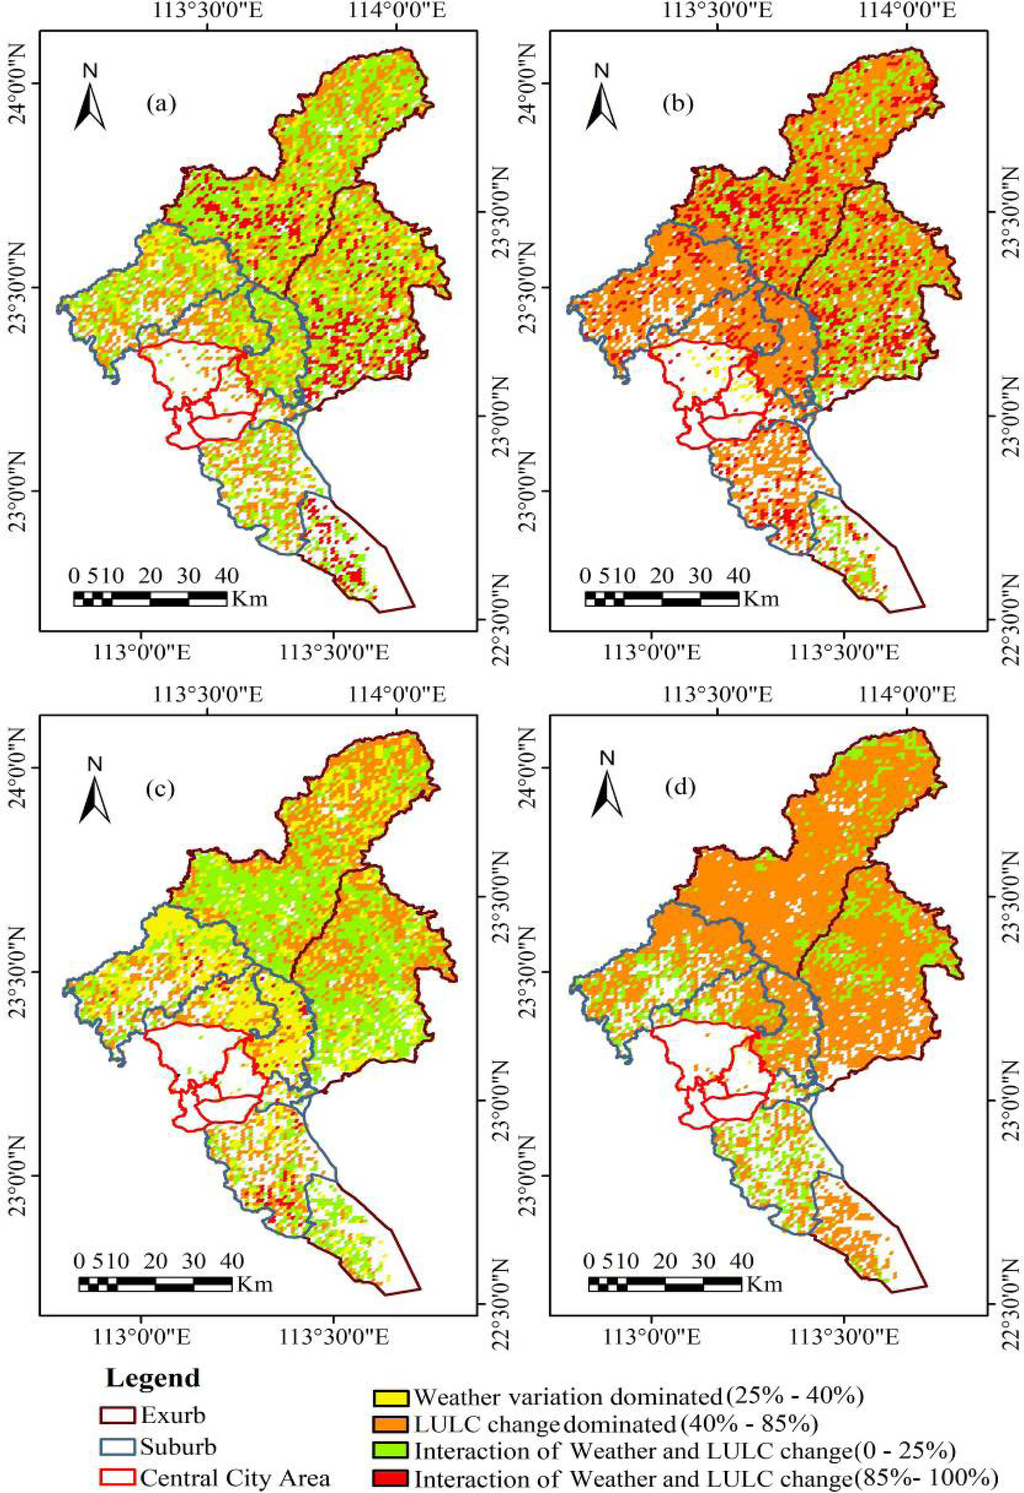 climate change and human activities a case study in xinjiang china